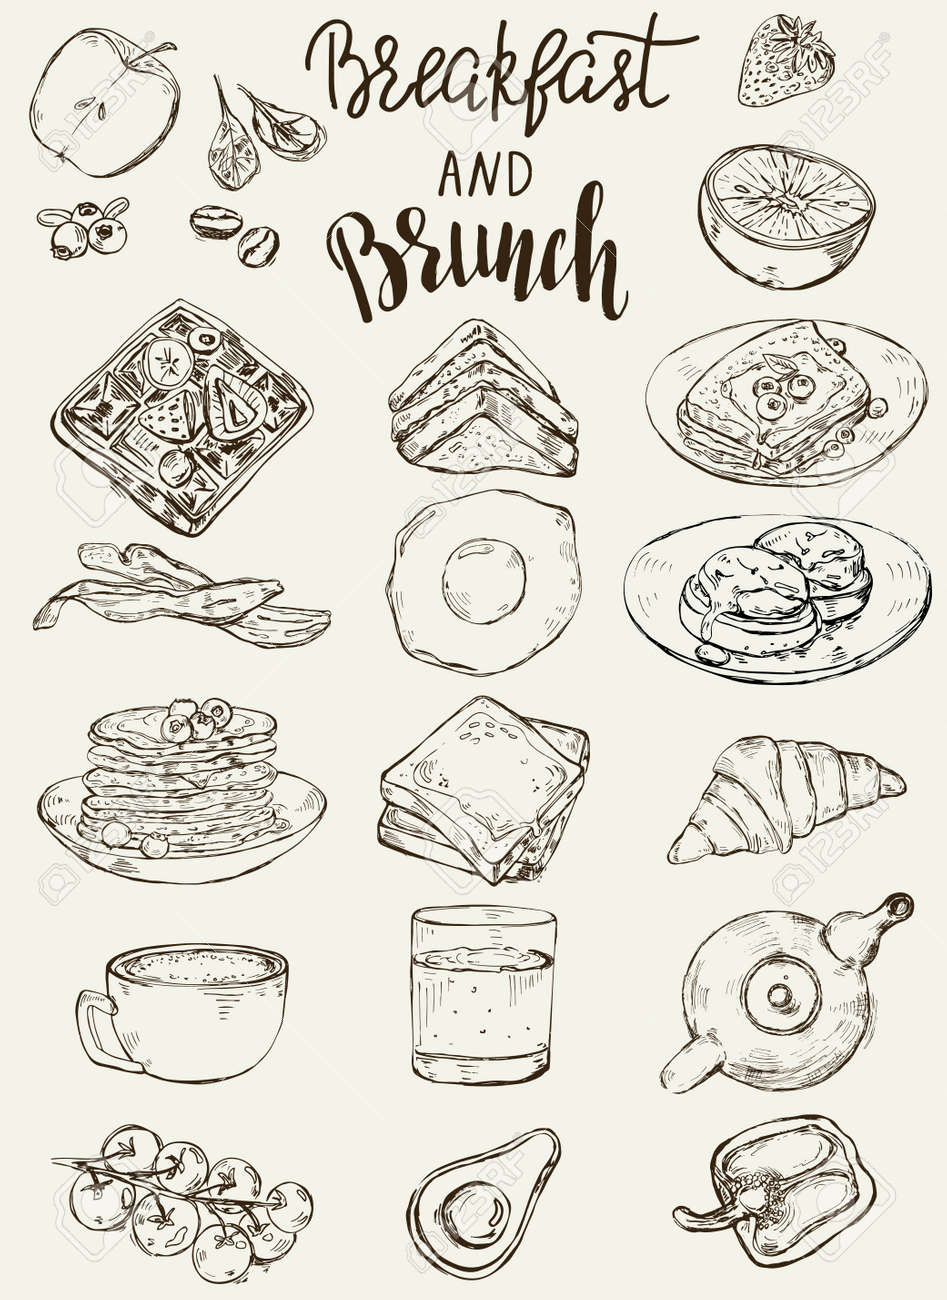 Set of traditional breakfast dishes, bakery and drinks. - 168582987